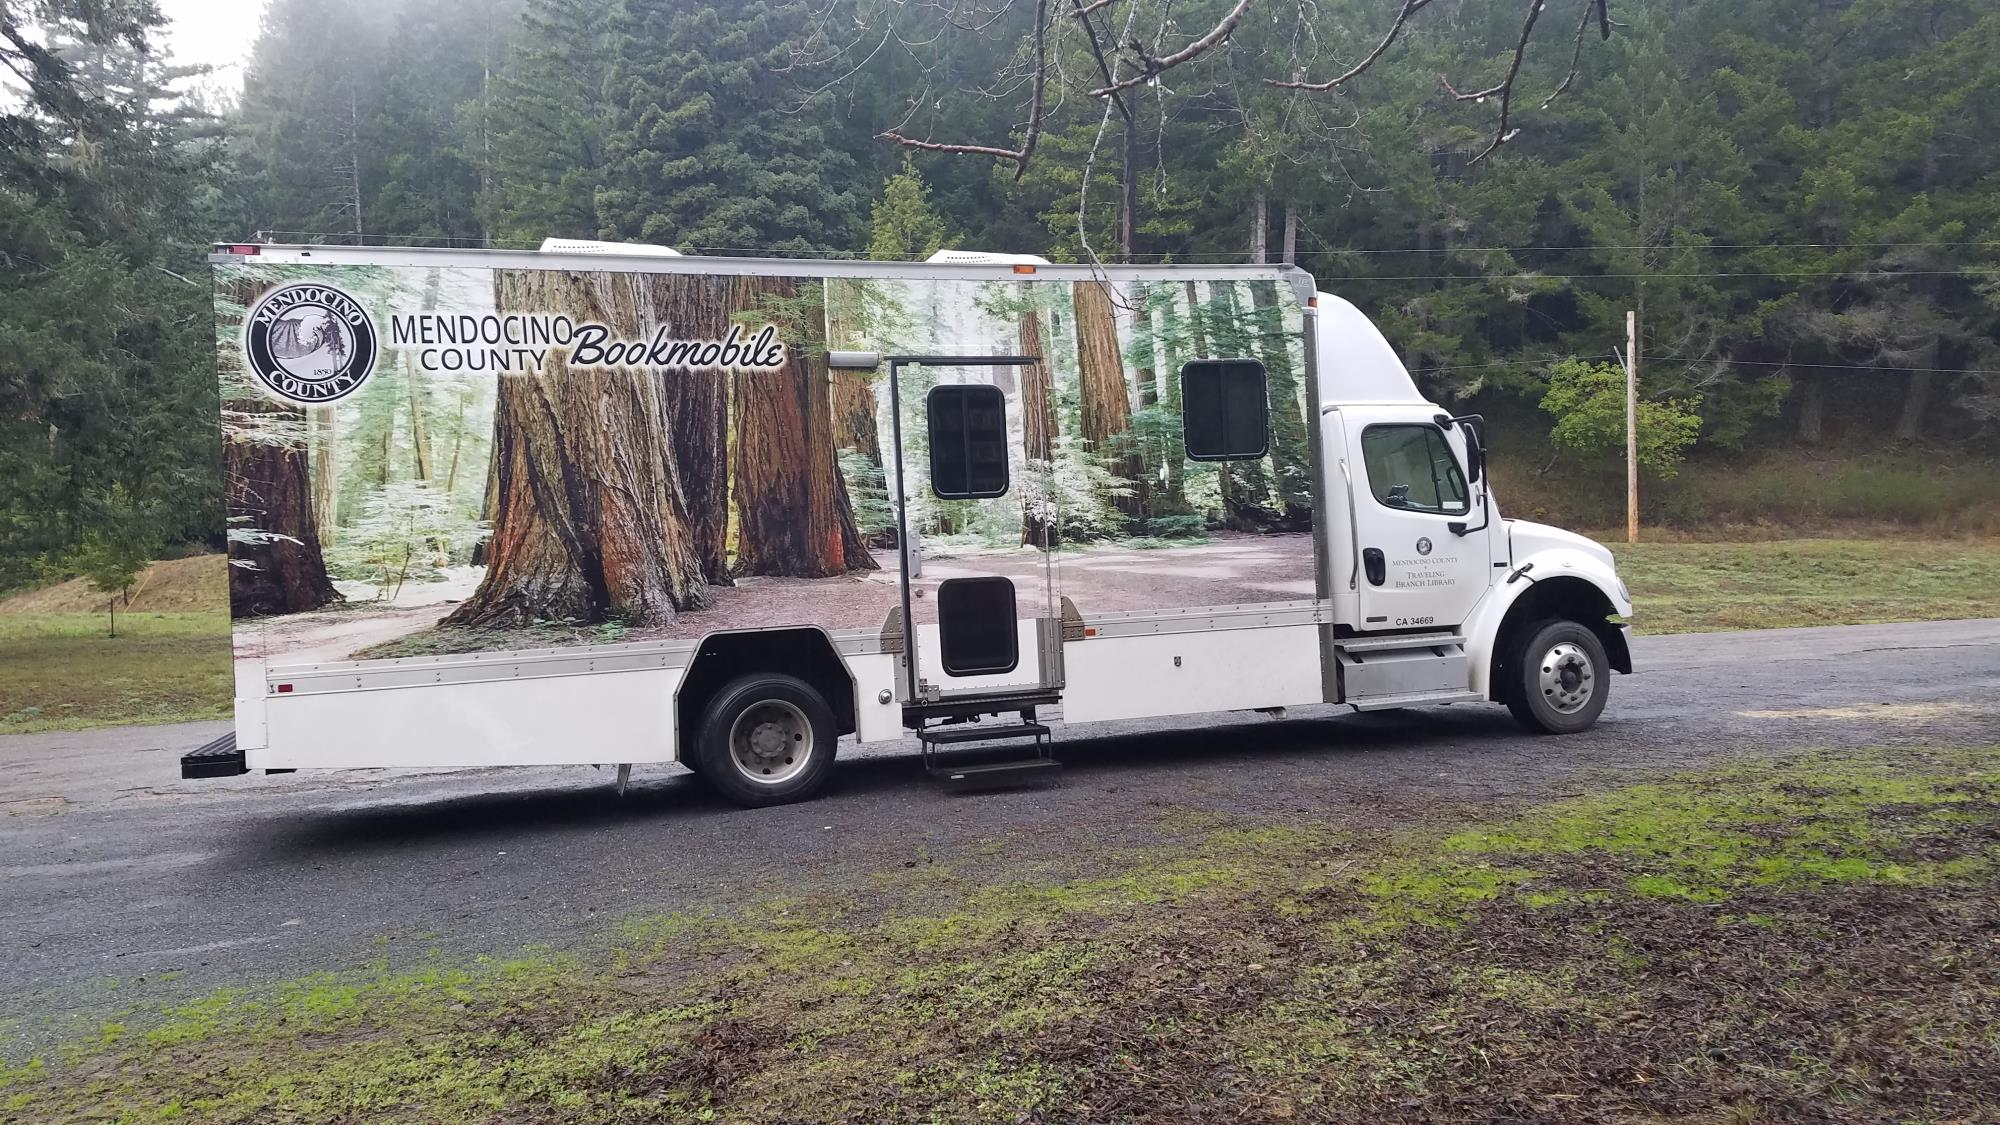 bookmobile parked in the trees